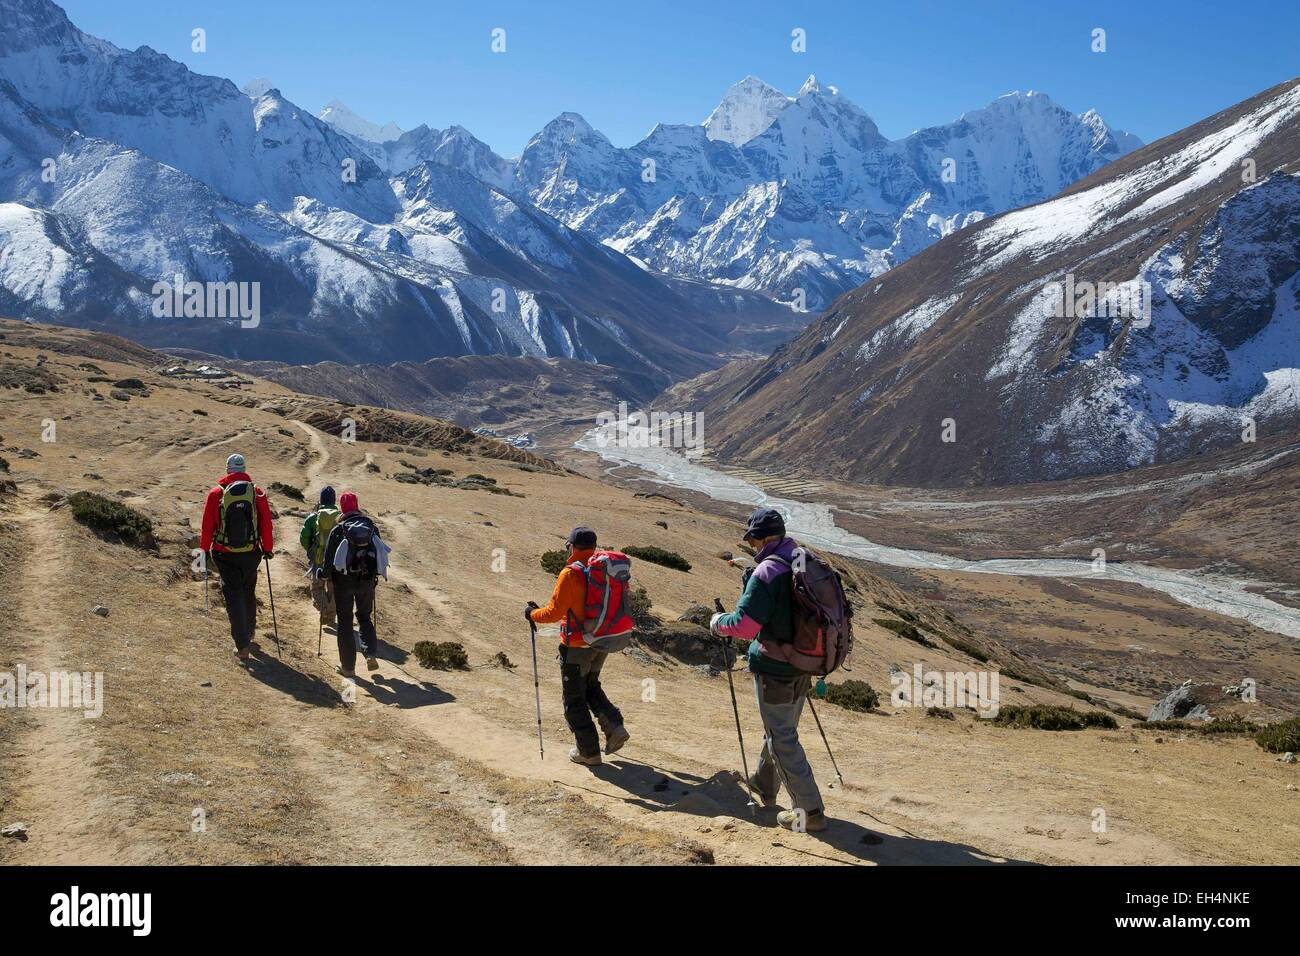 Nepal, Sagarmatha National Park, listed as World Heritage by UNESCO, Solu Khumbu District, hikers on the way to - Stock Image